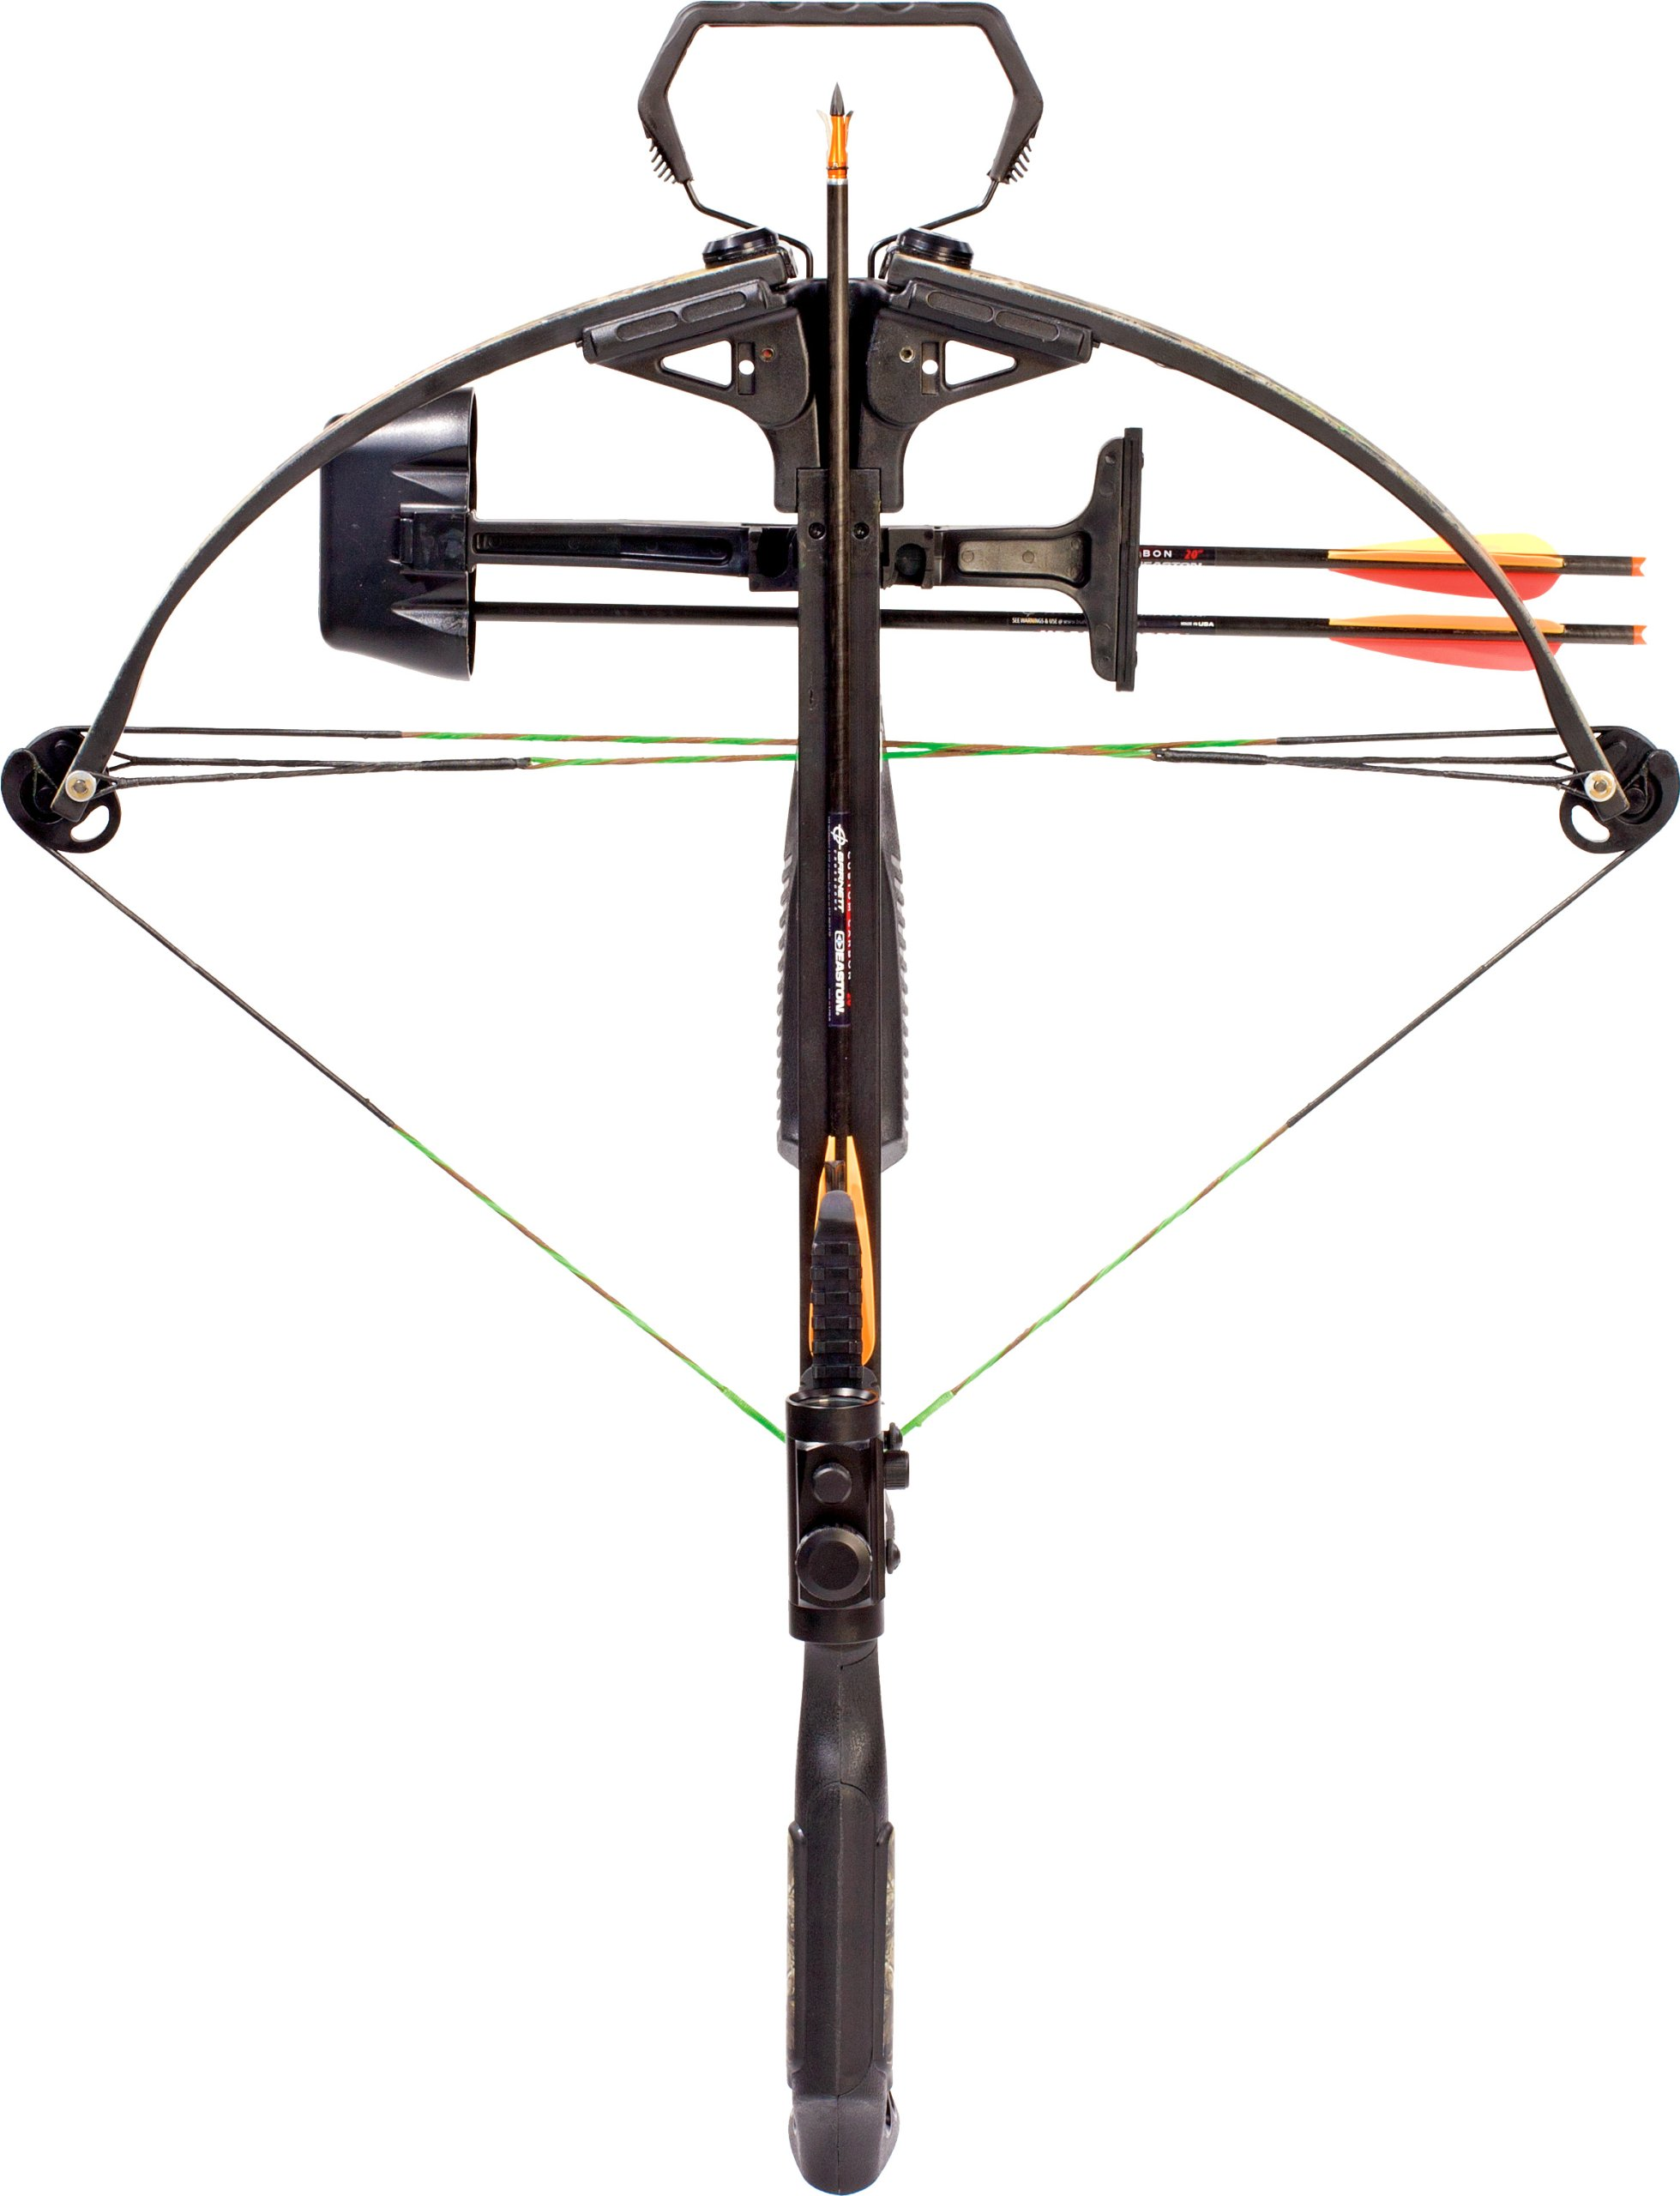 Barnett Jackal Crossbow Package (Quiver, 3 - 20-Inch Arrows and Premium Red Dot Sight) by Barnett (Image #4)